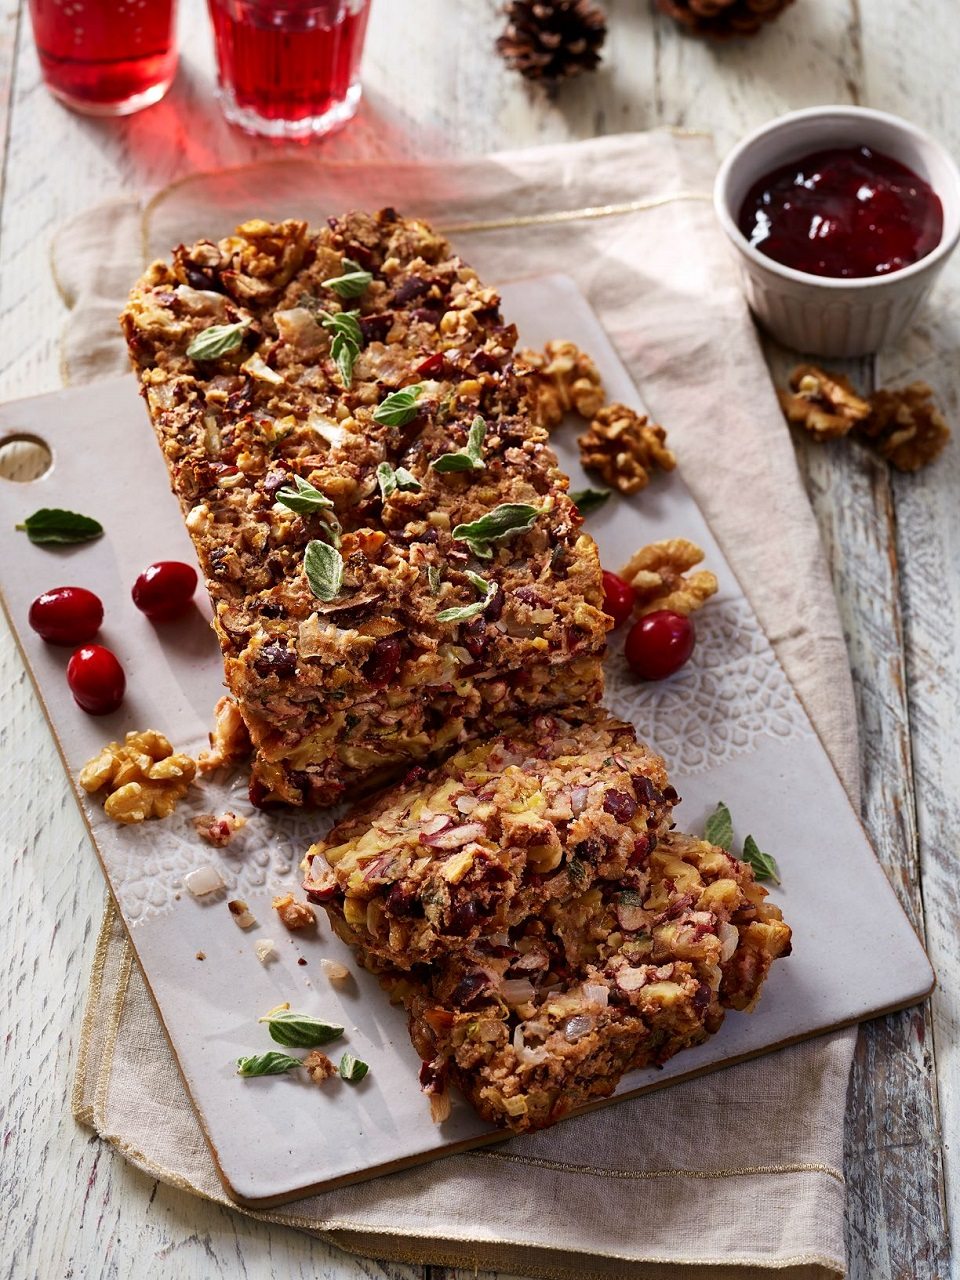 Christmas Nut Loaf With California Walnuts